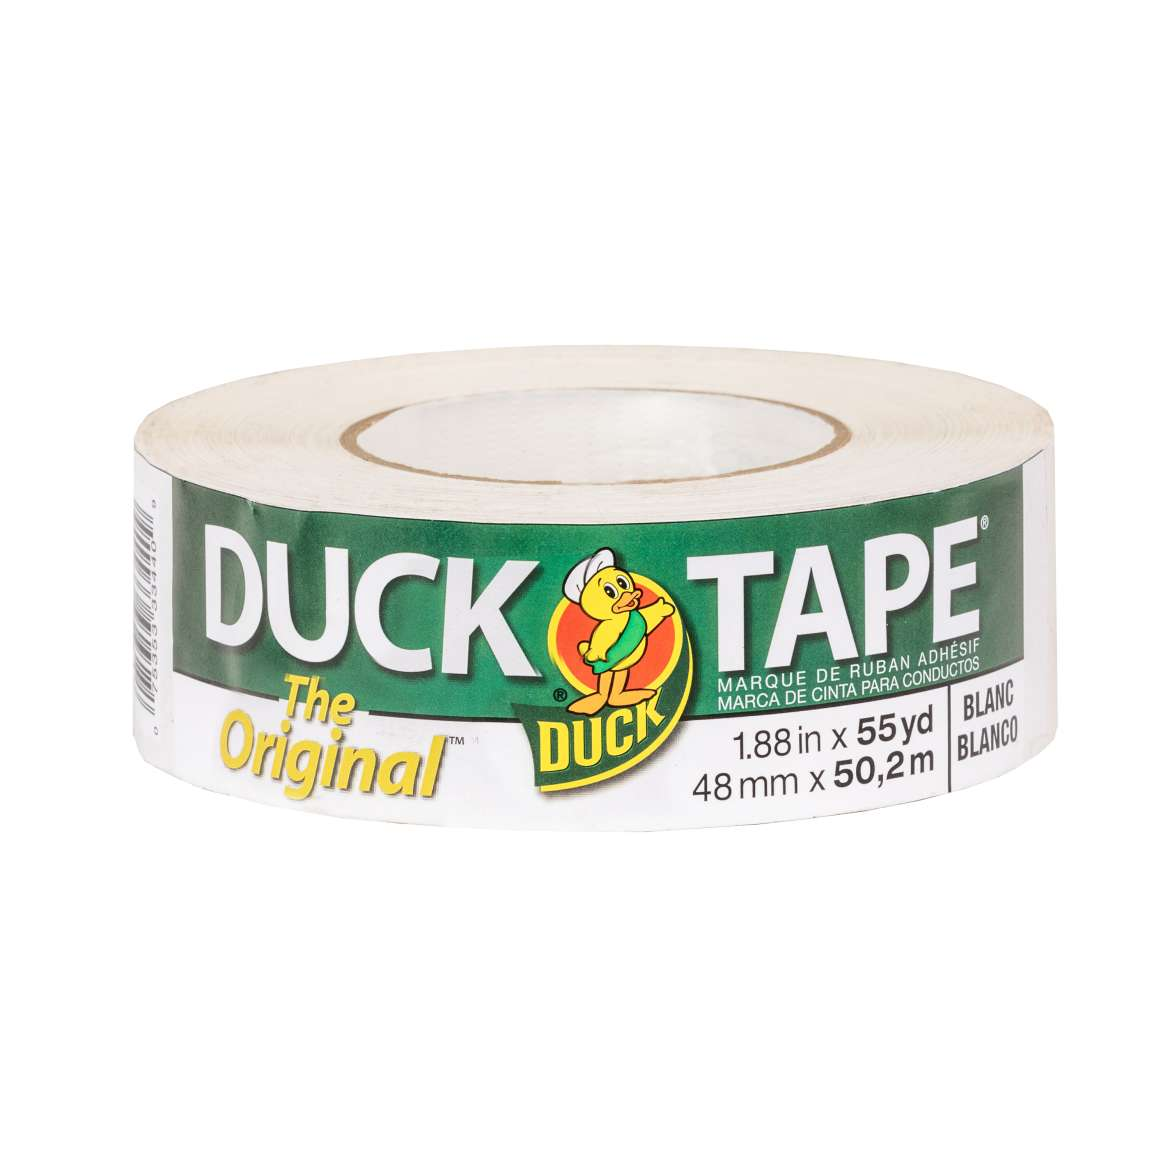 The Original Duck Tape® Brand Duct Tape Image